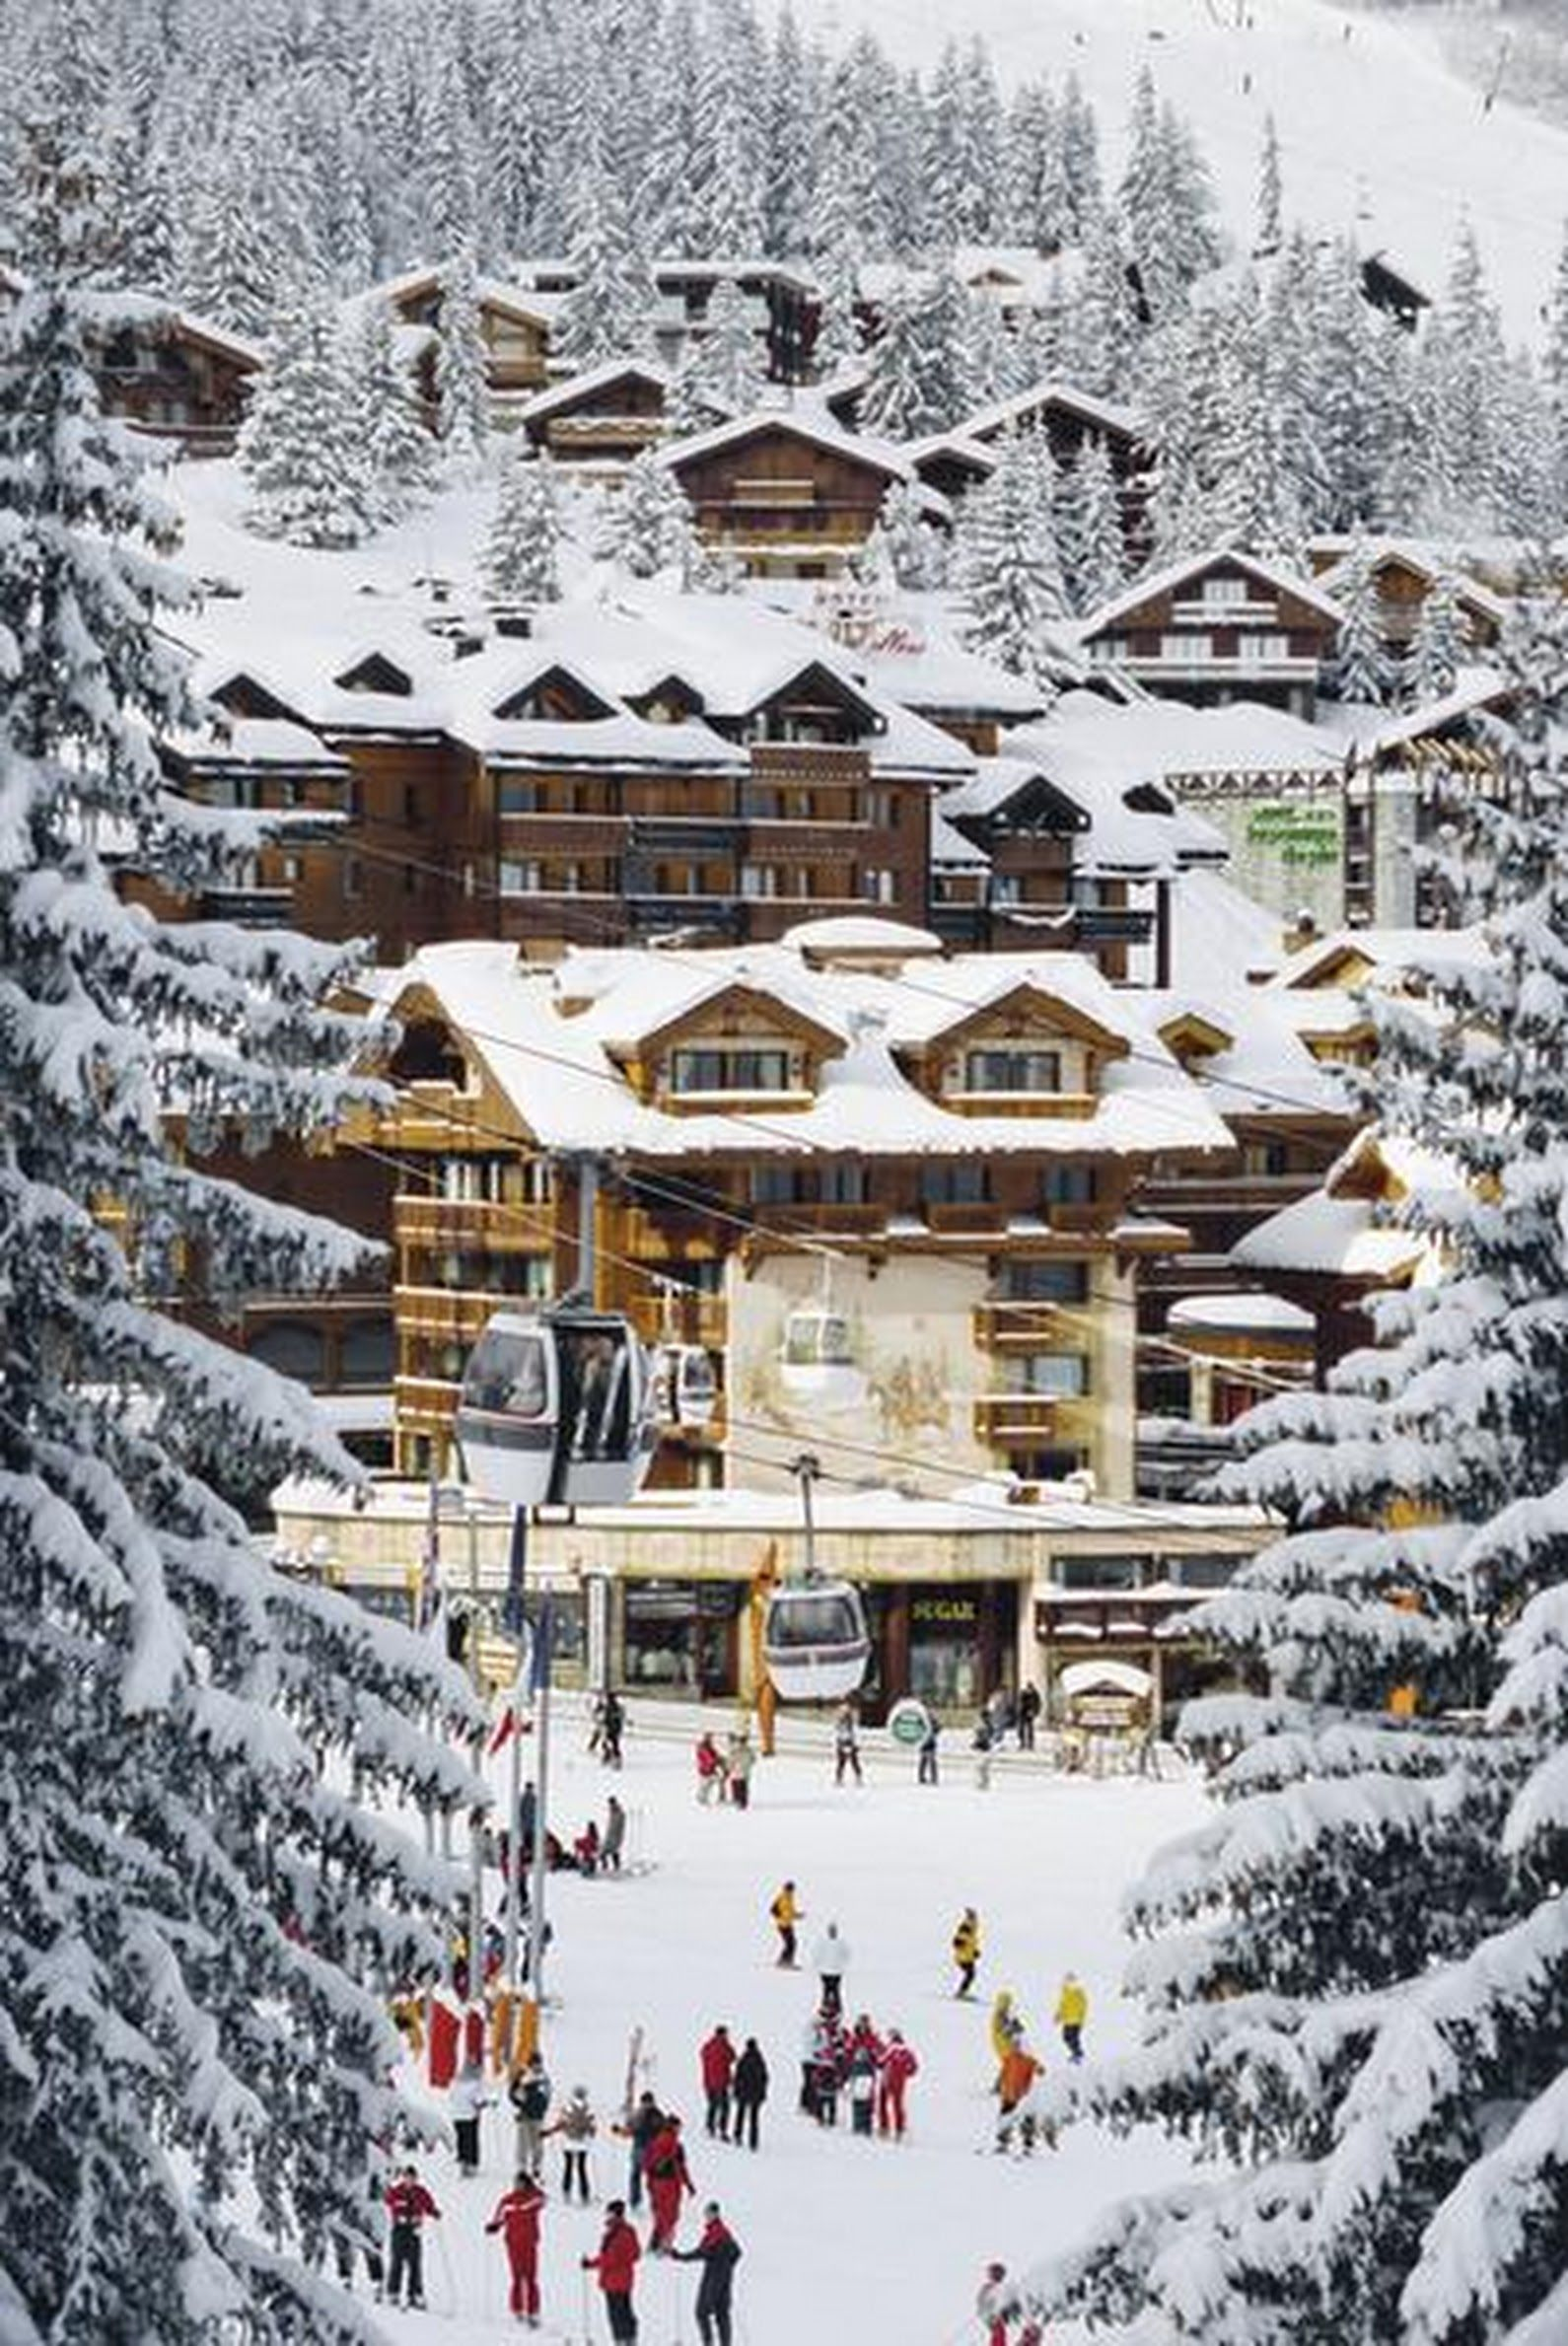 pin by raymond pease on landscape | pinterest | alps, places and skiing